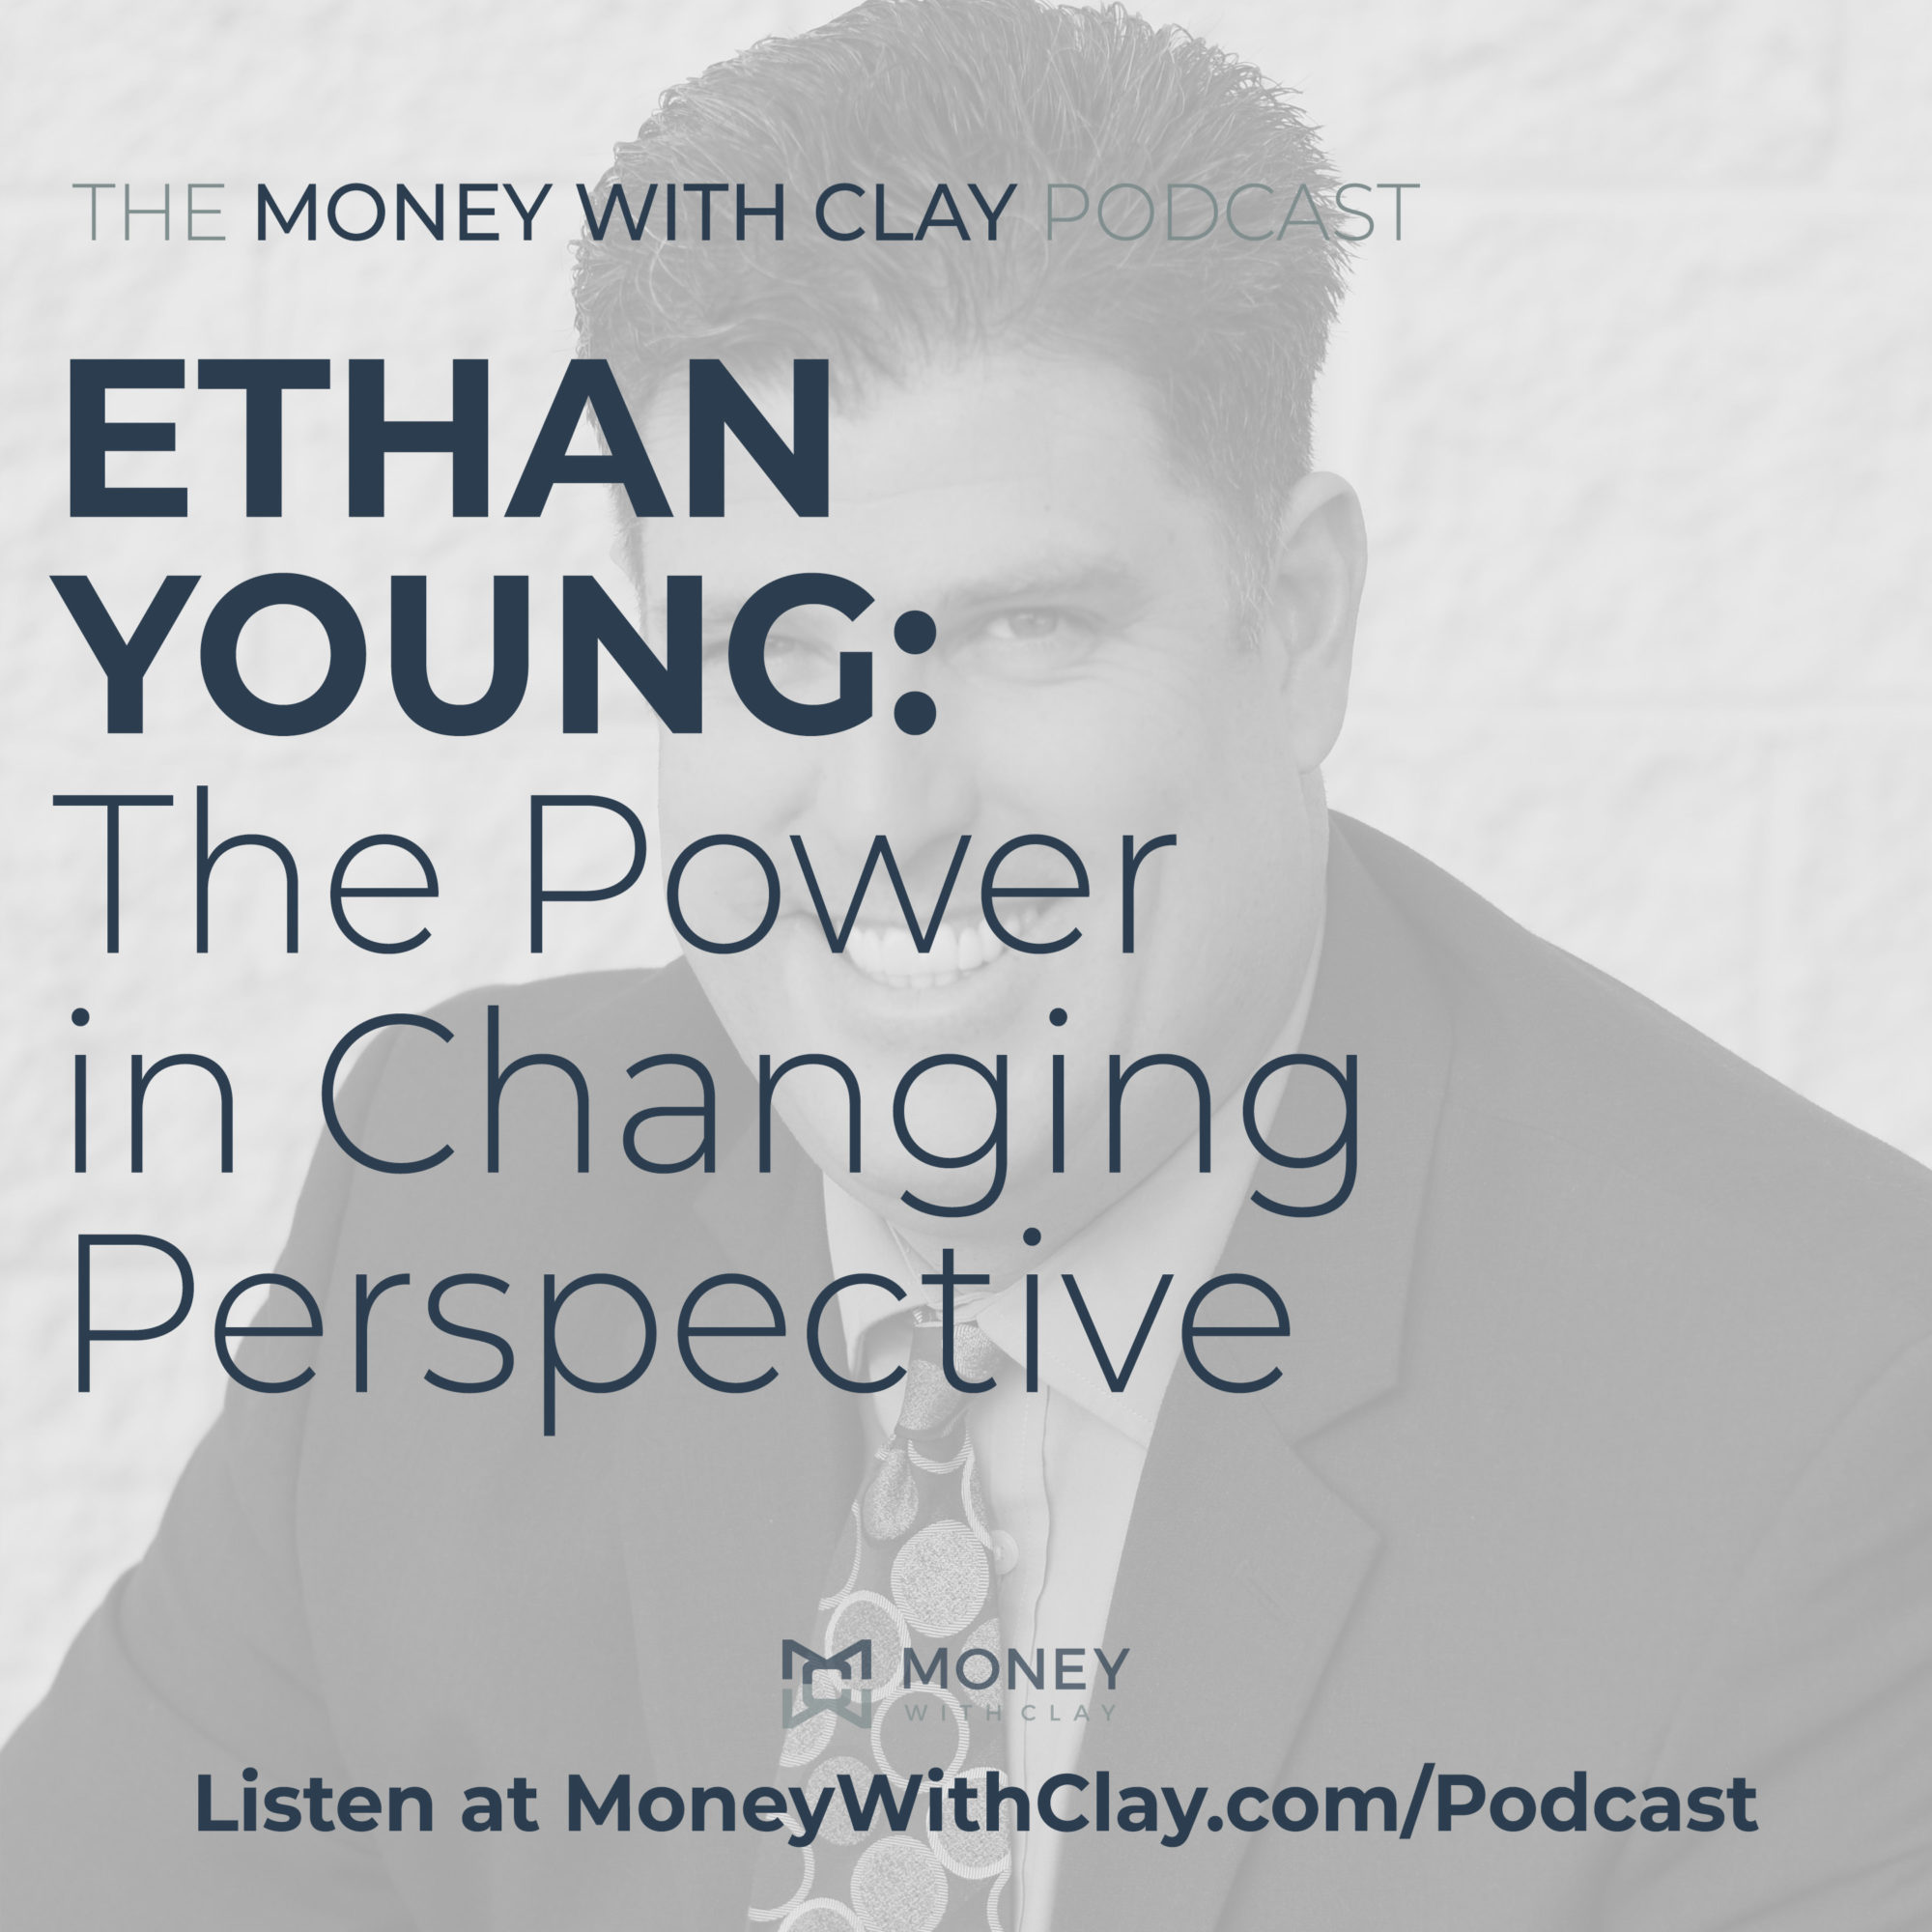 Ethan Young: The Power in Changing Perspective